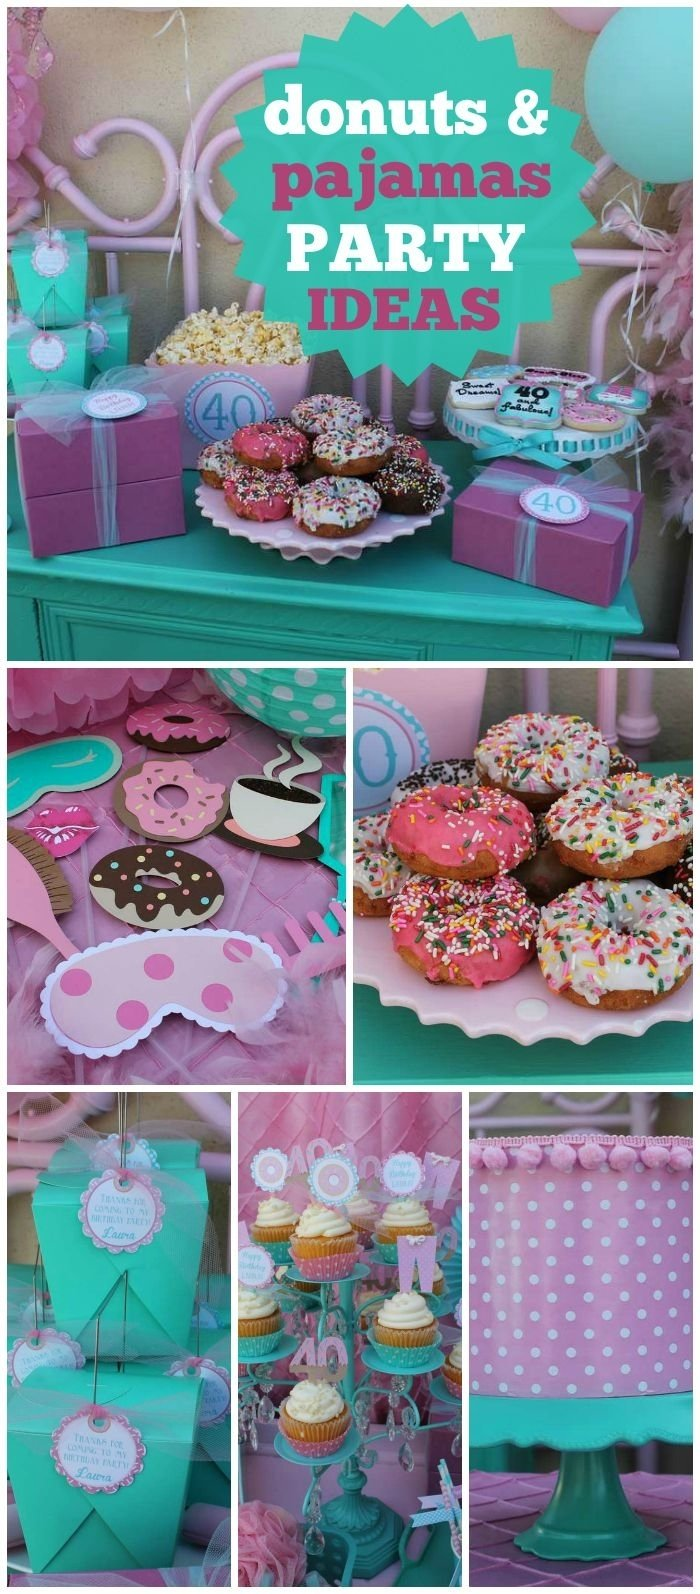 10 Amazing Pajama Party Ideas For Kids donuts pajamas birthday lauras 40th donuts pjs bash 3 2020